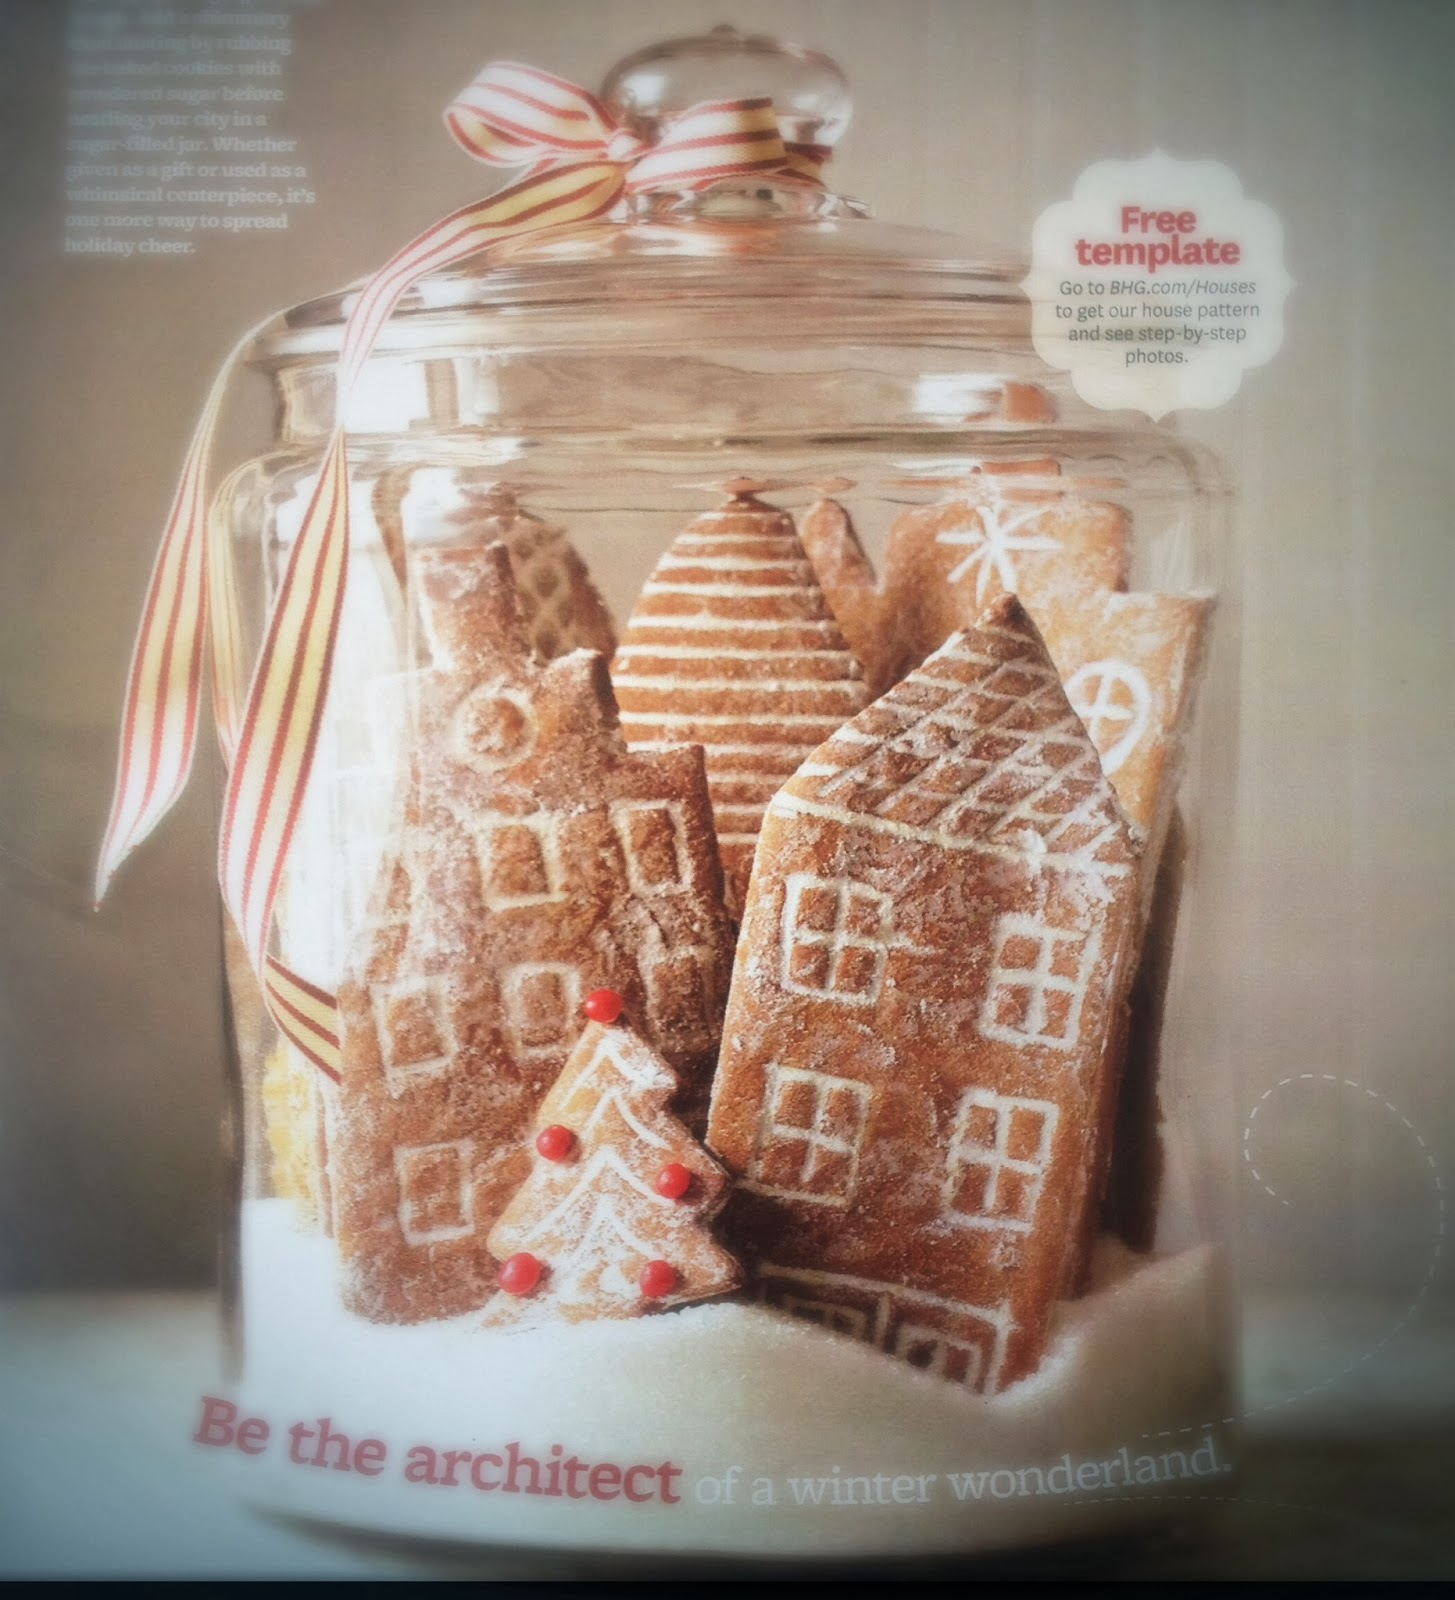 Snowy Gingerbread Village from Better Homes & Gardens